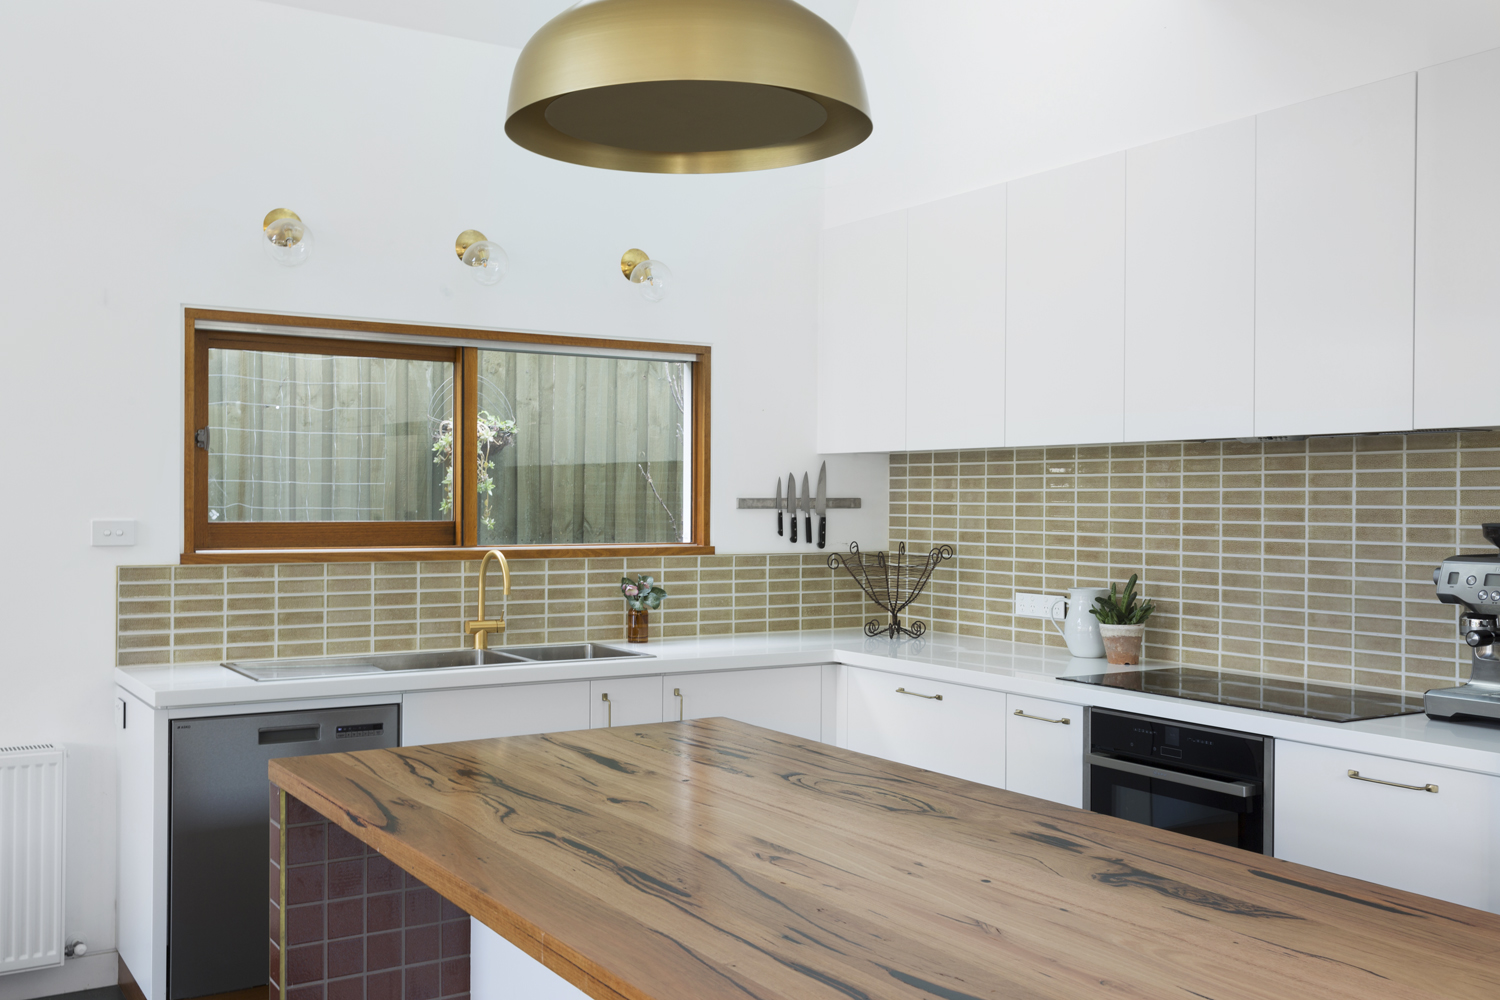 Clifton Hill kitchen design by Melbourne interior designer and kitchen designer Meredith Lee